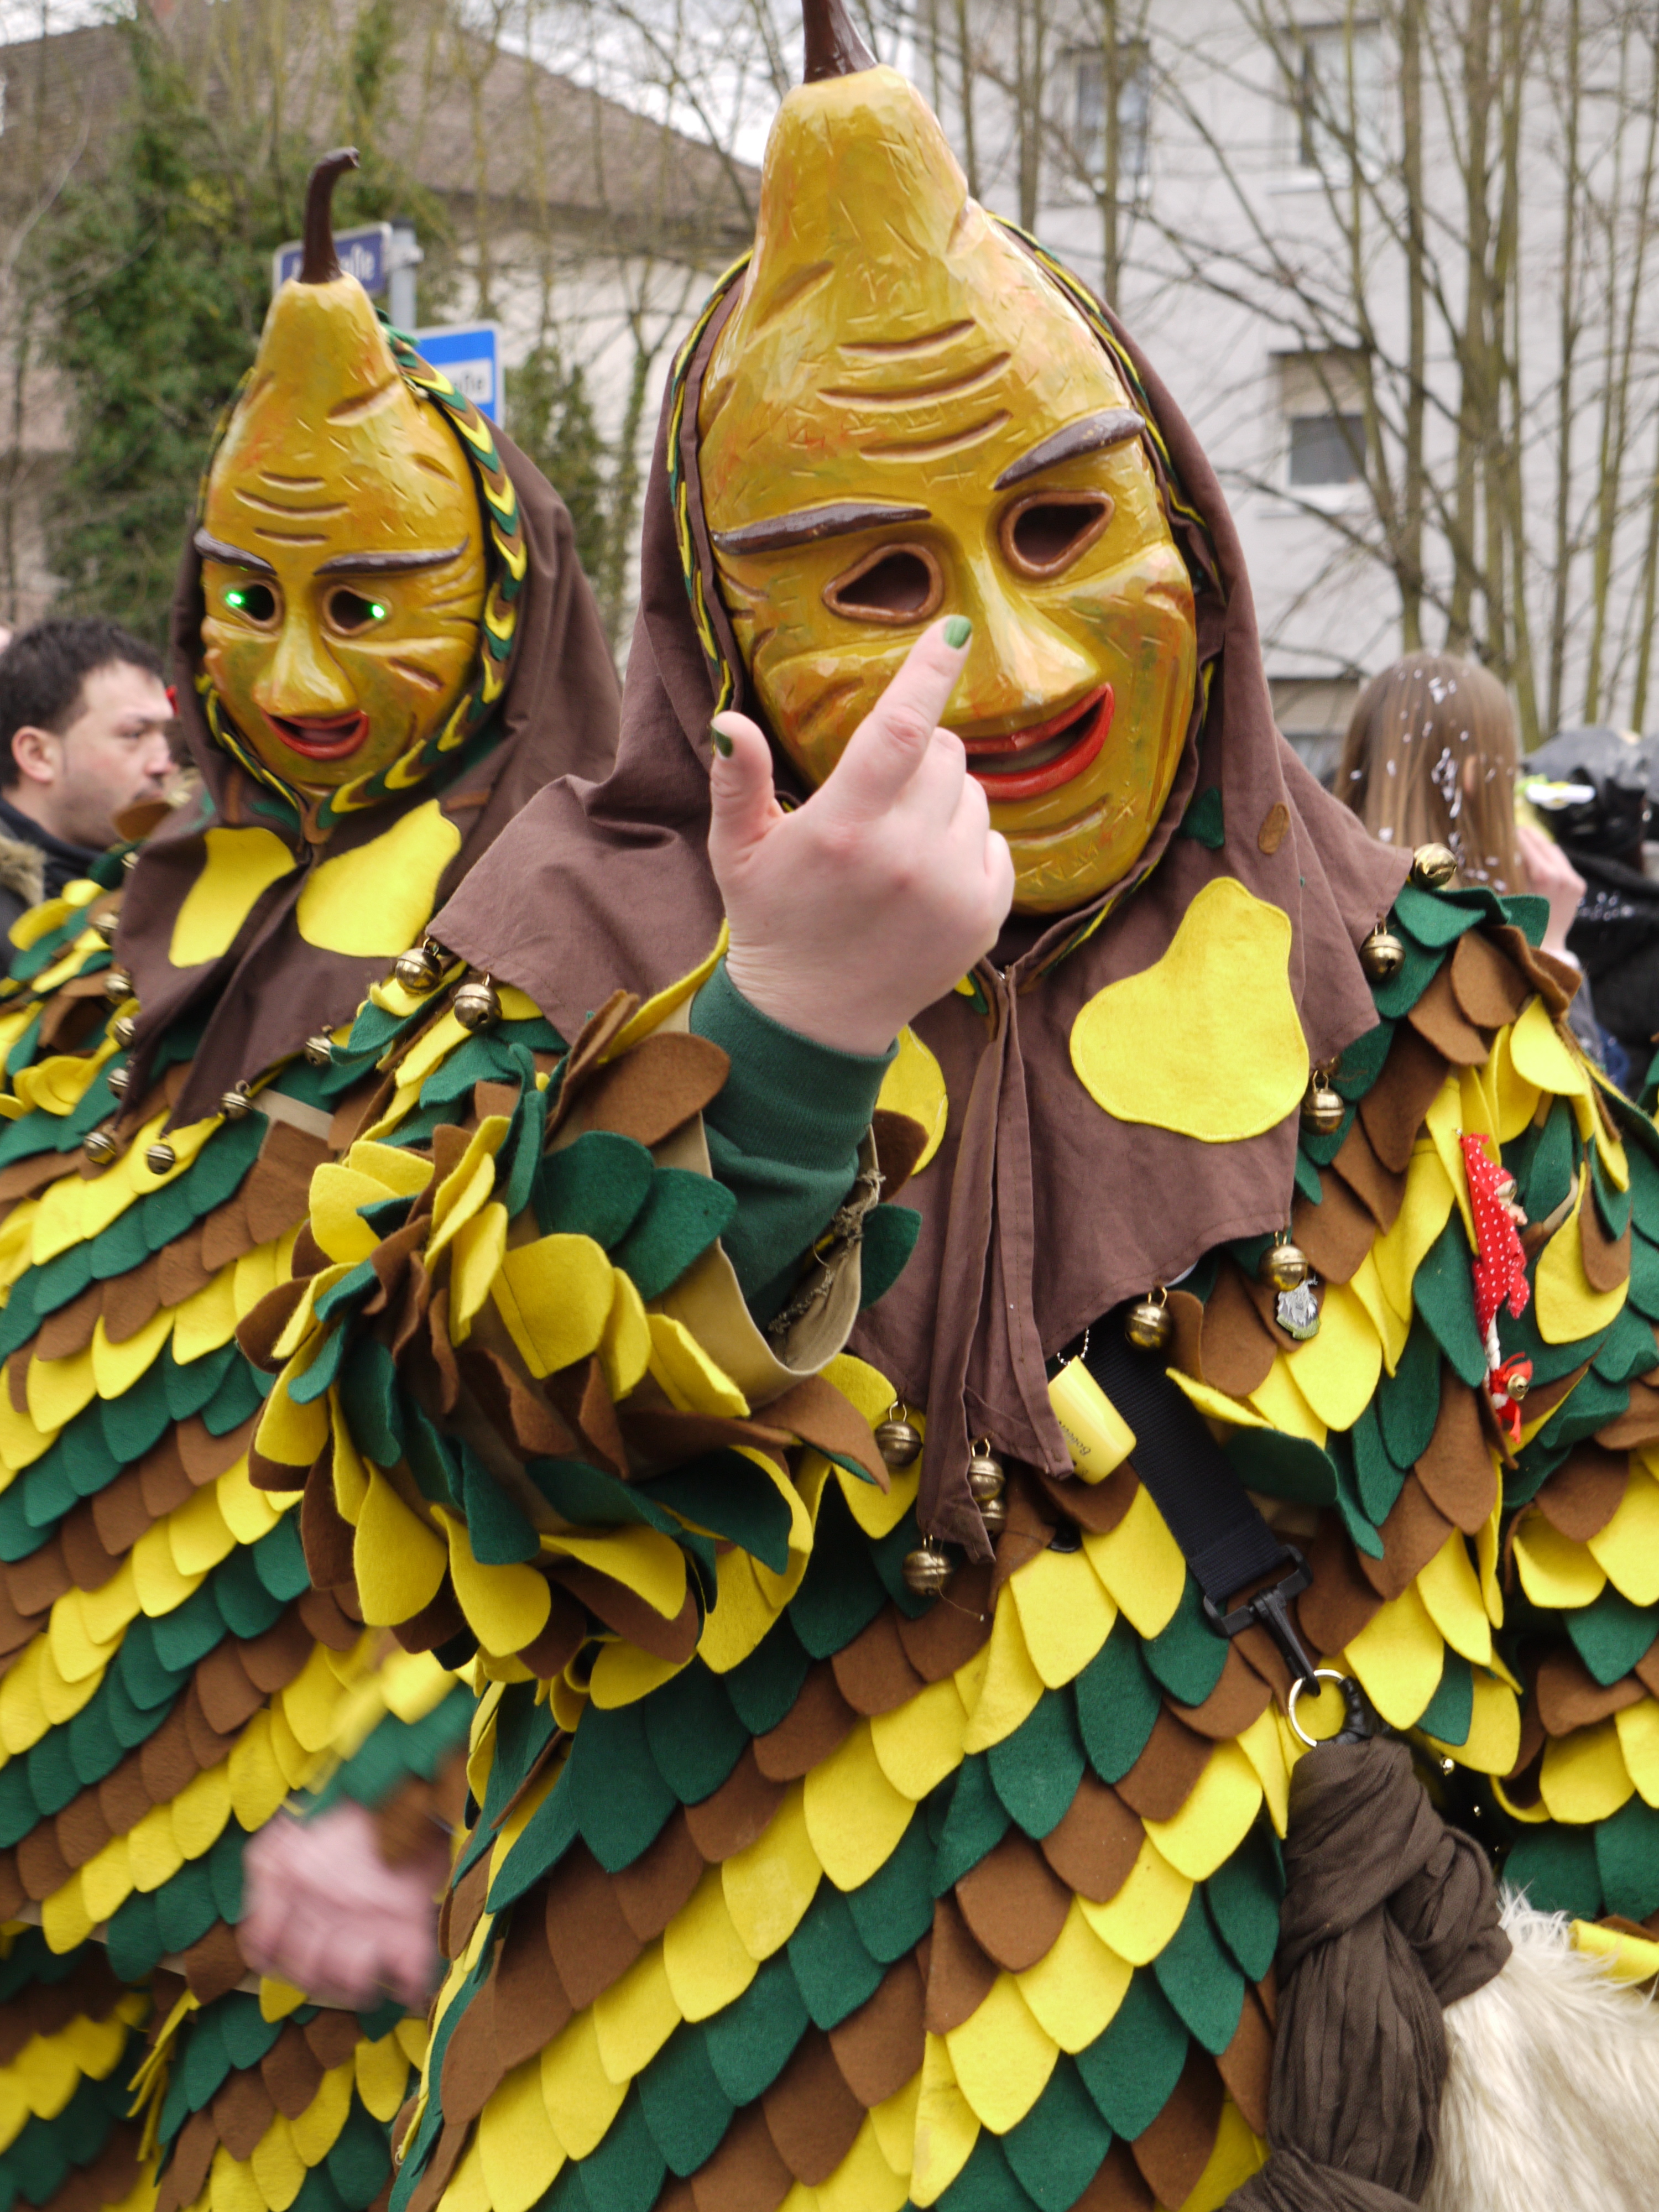 Hand carved wooden masks and hand-made carnival costumes